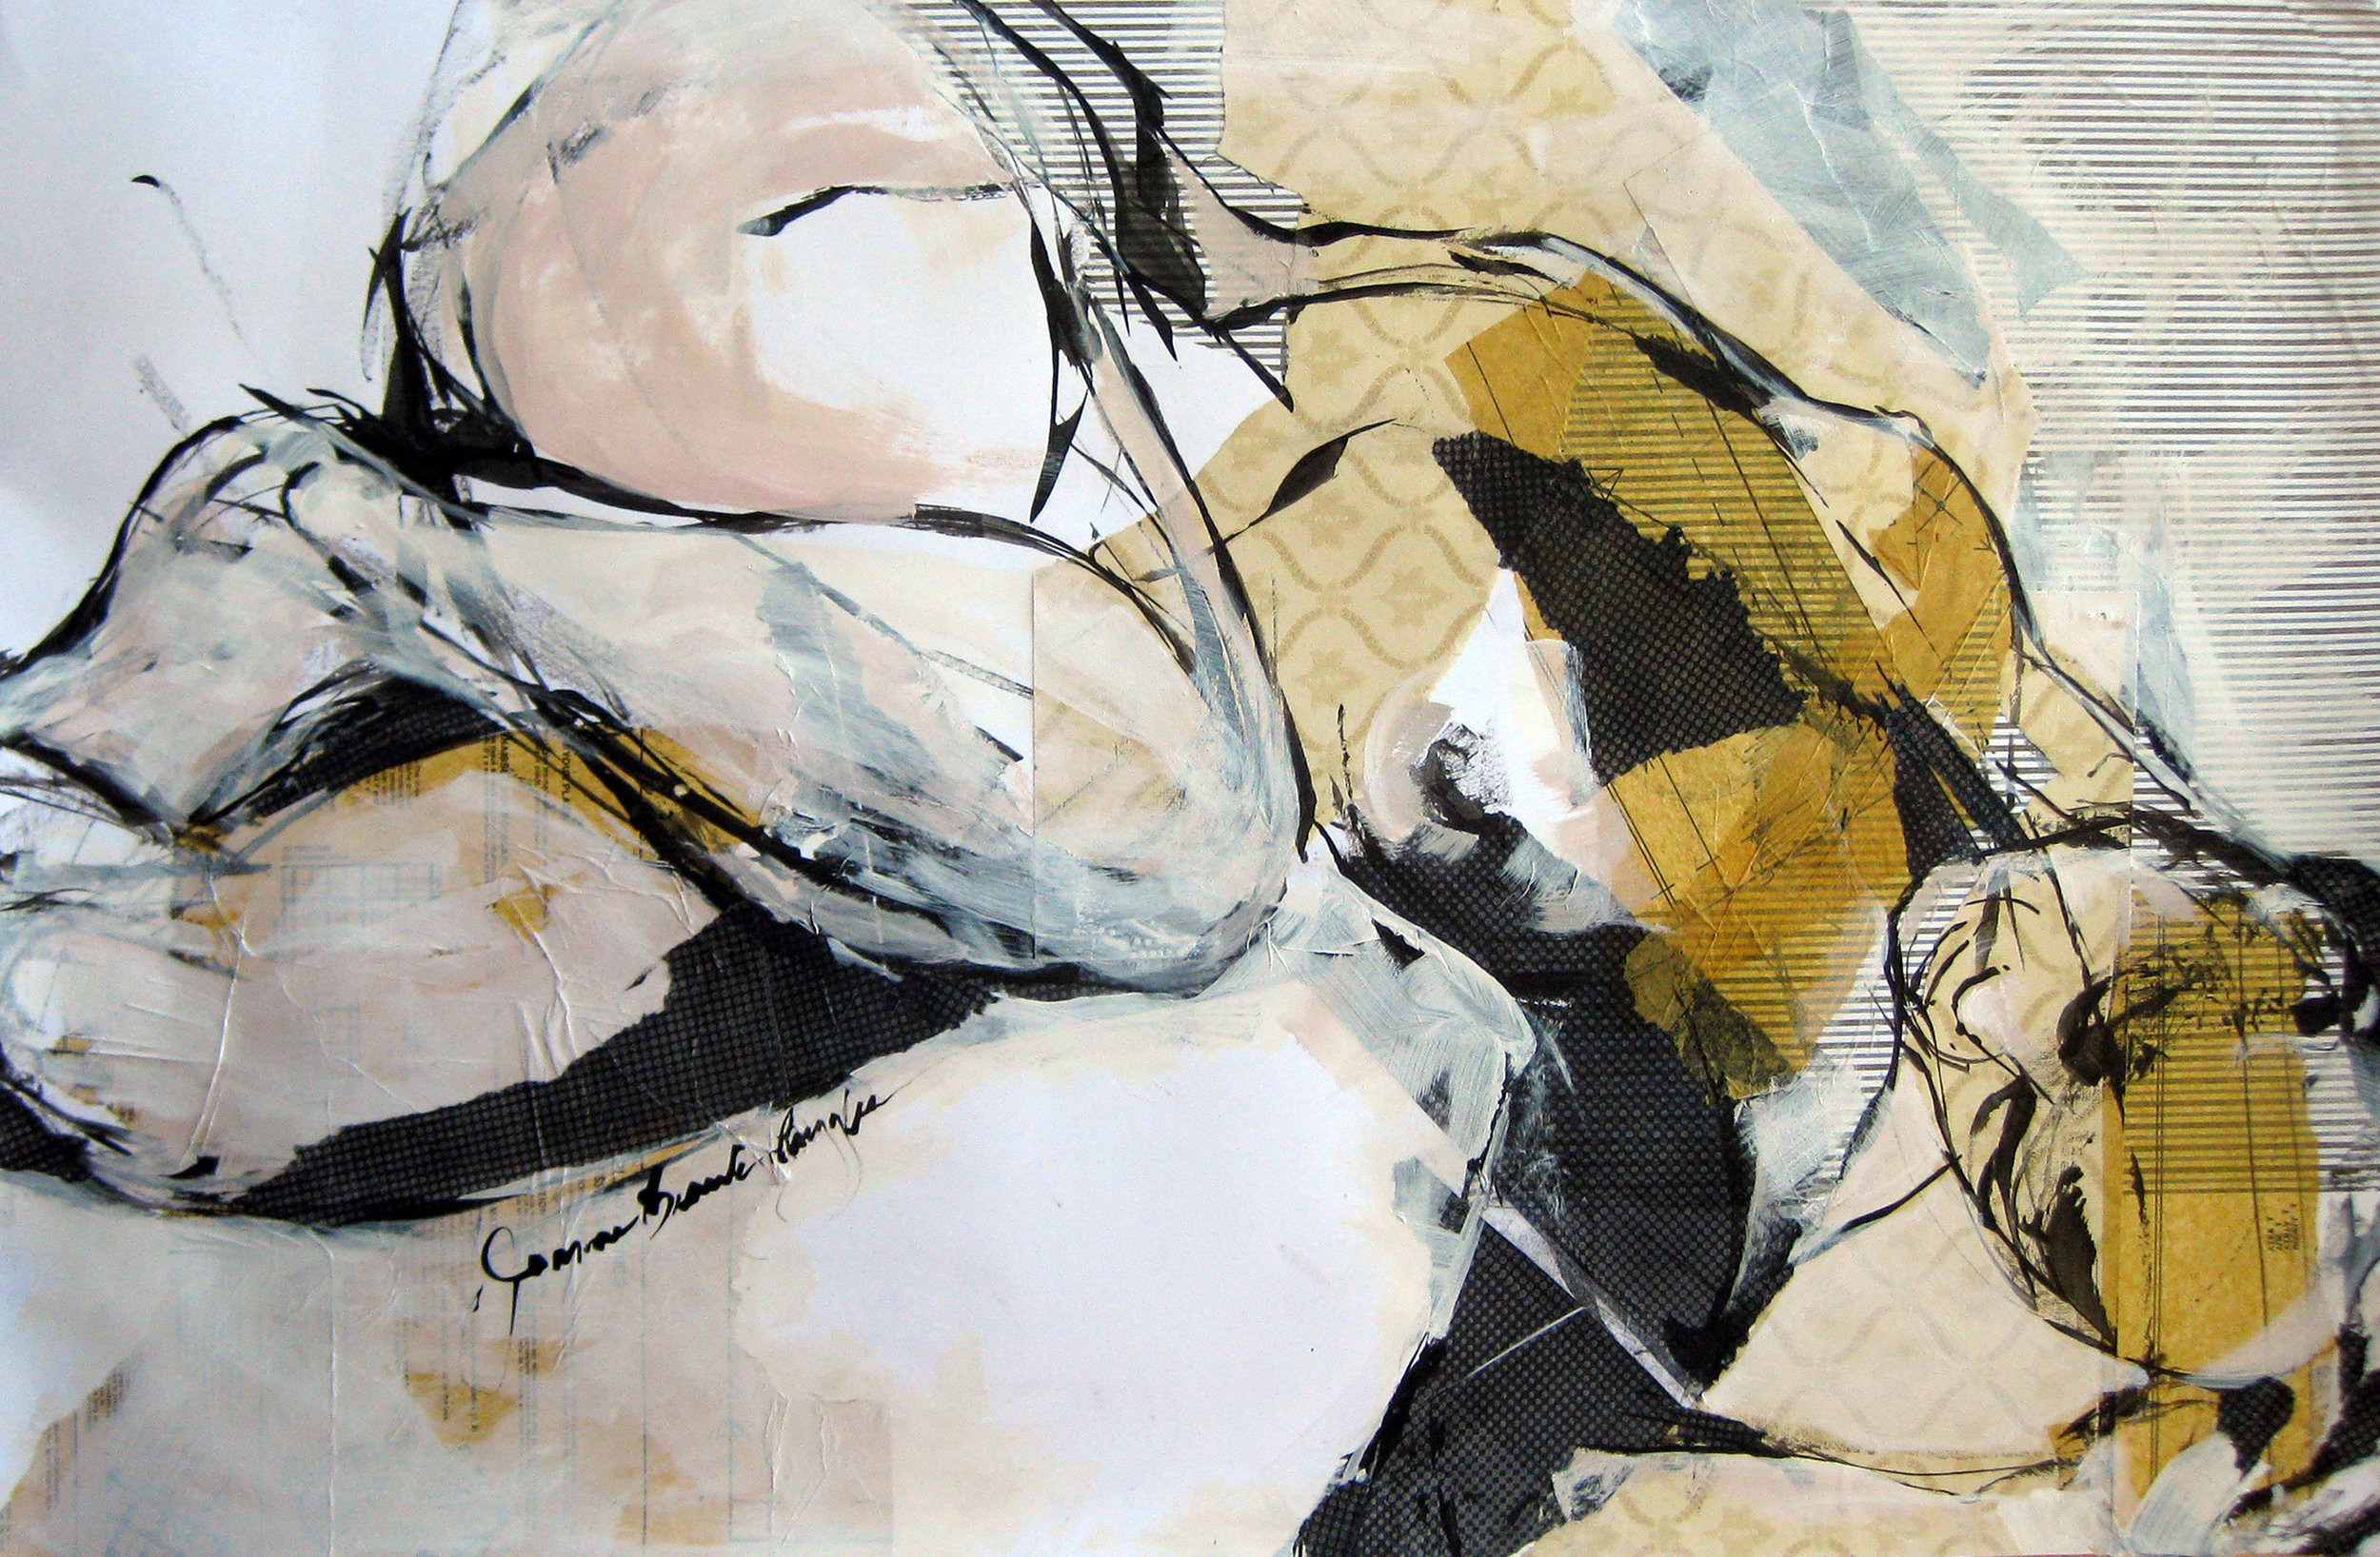 BeauleRuggles_TheArcofAllThings_26x40%22_AcrylicCollage&InkonPaper_$2950.JPG